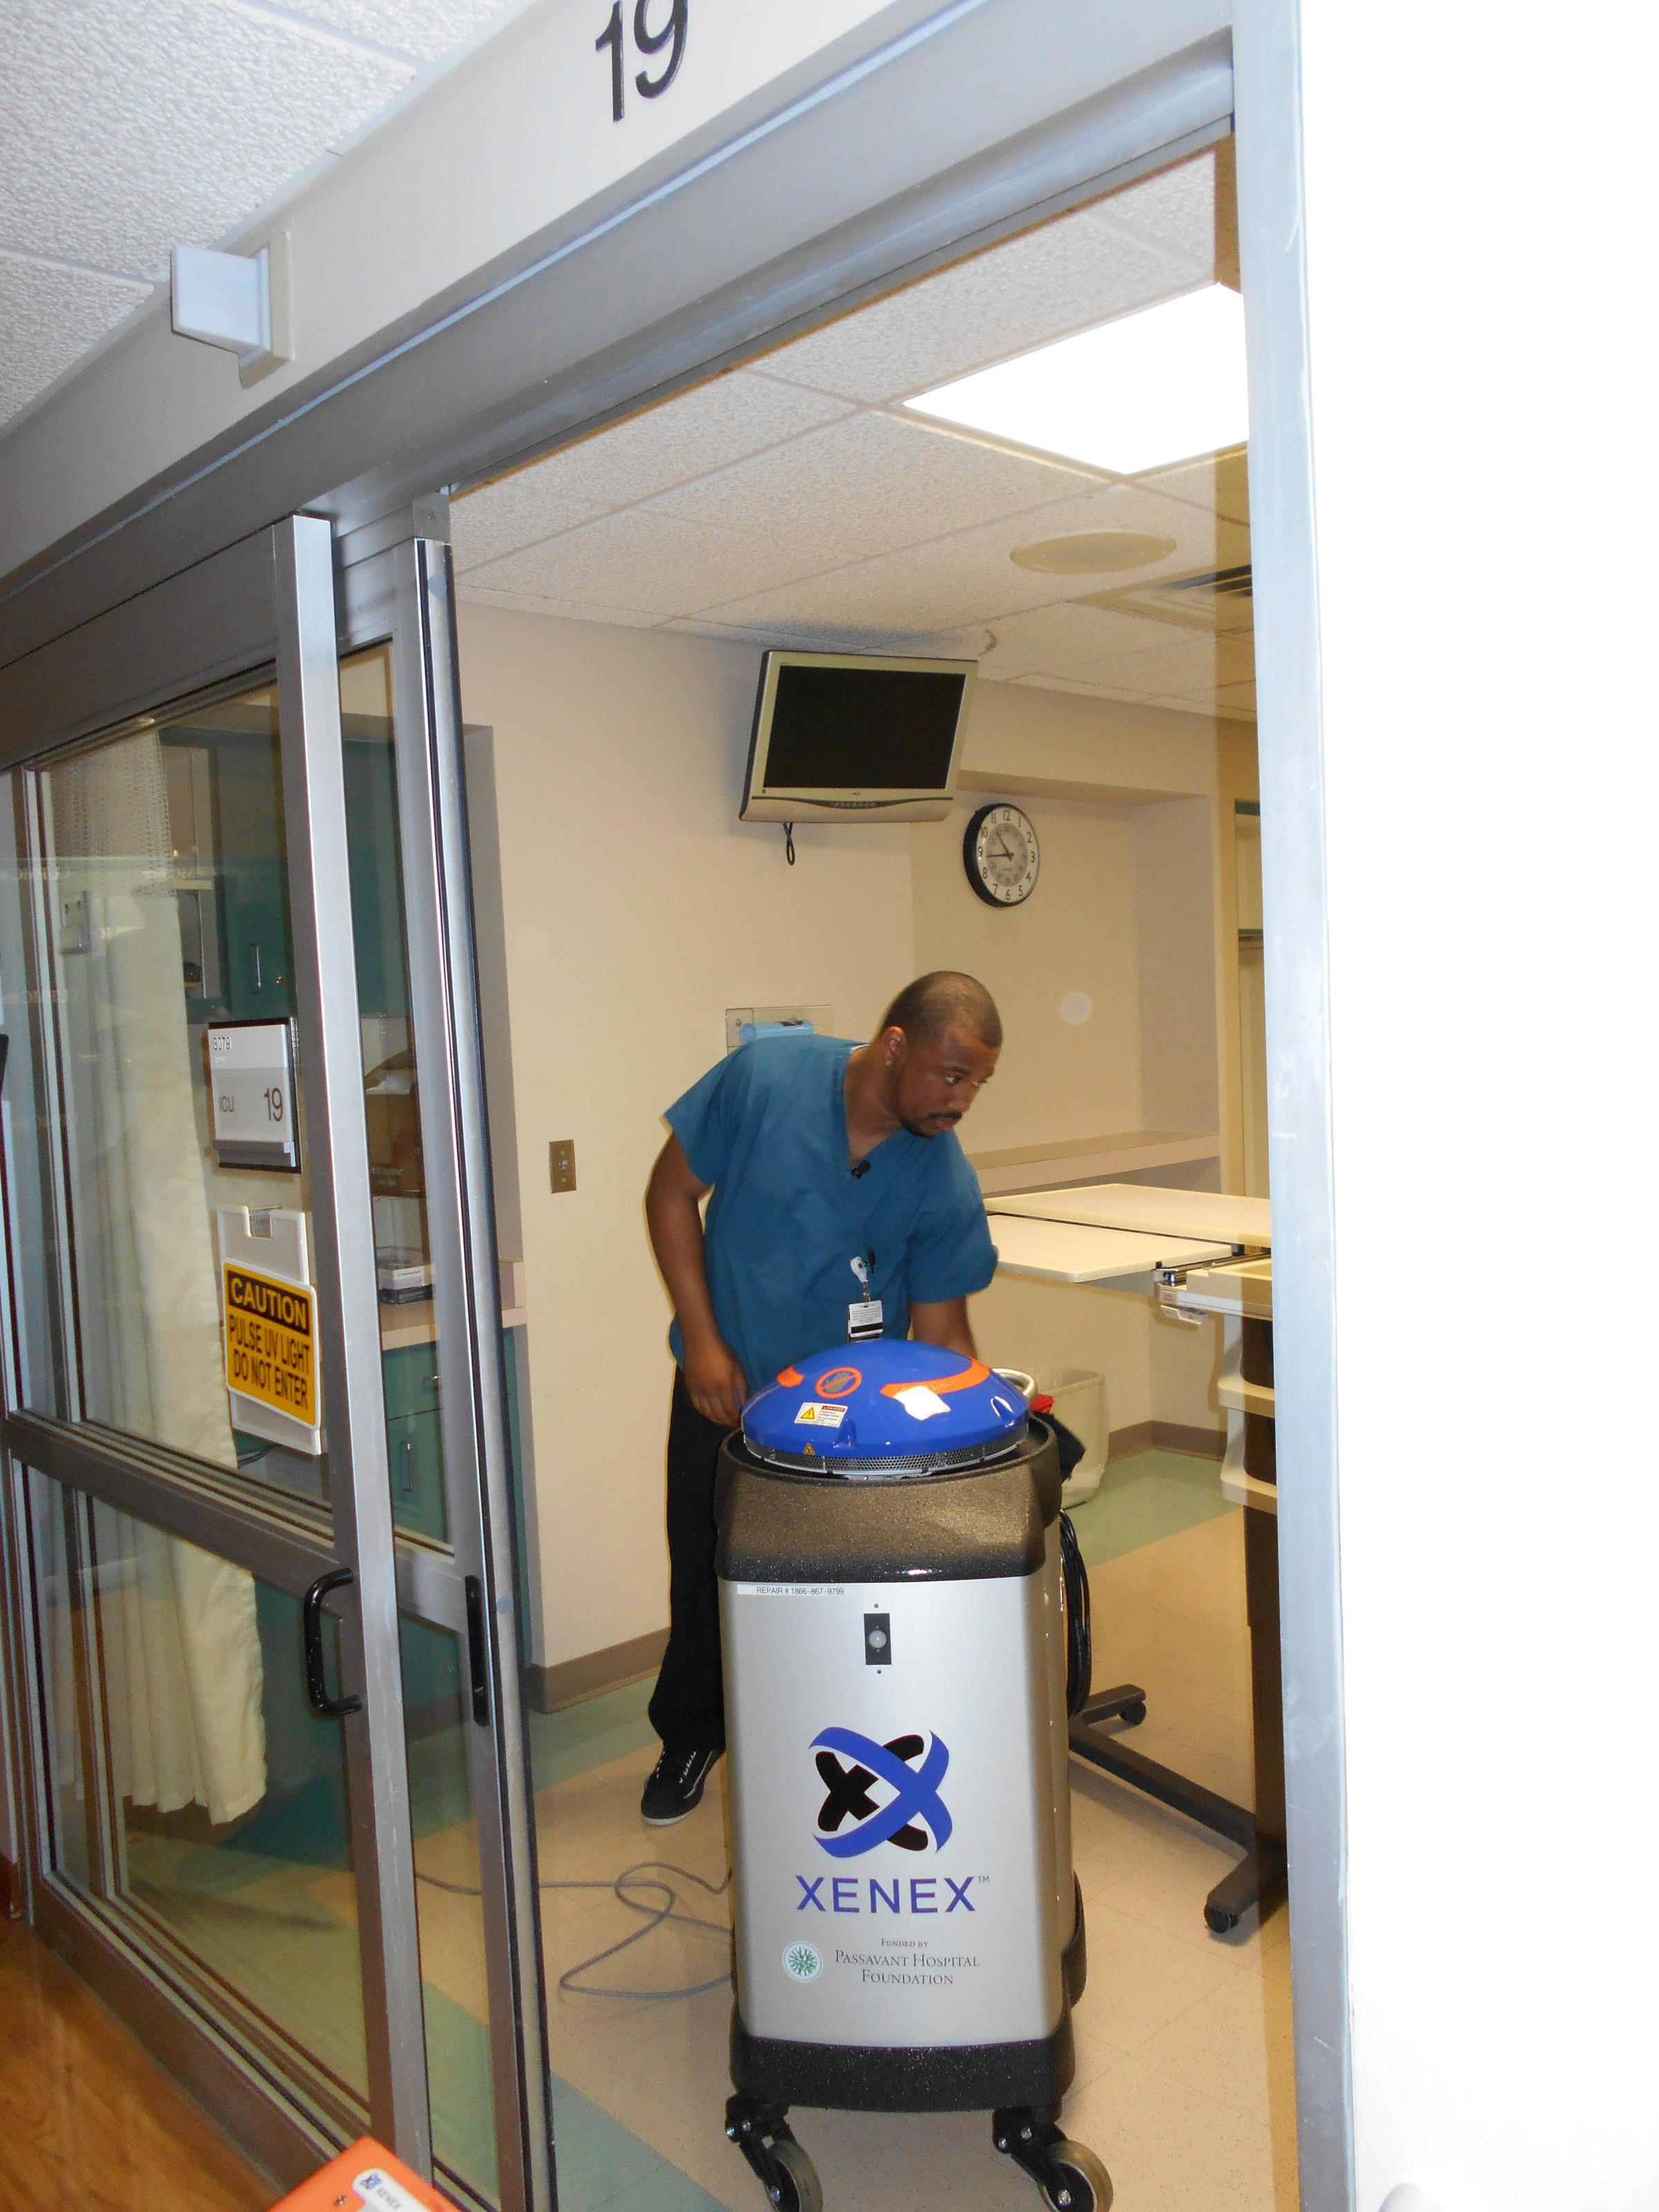 UV Robots Zap Germs in UPMC Hospitals | 90 5 WESA